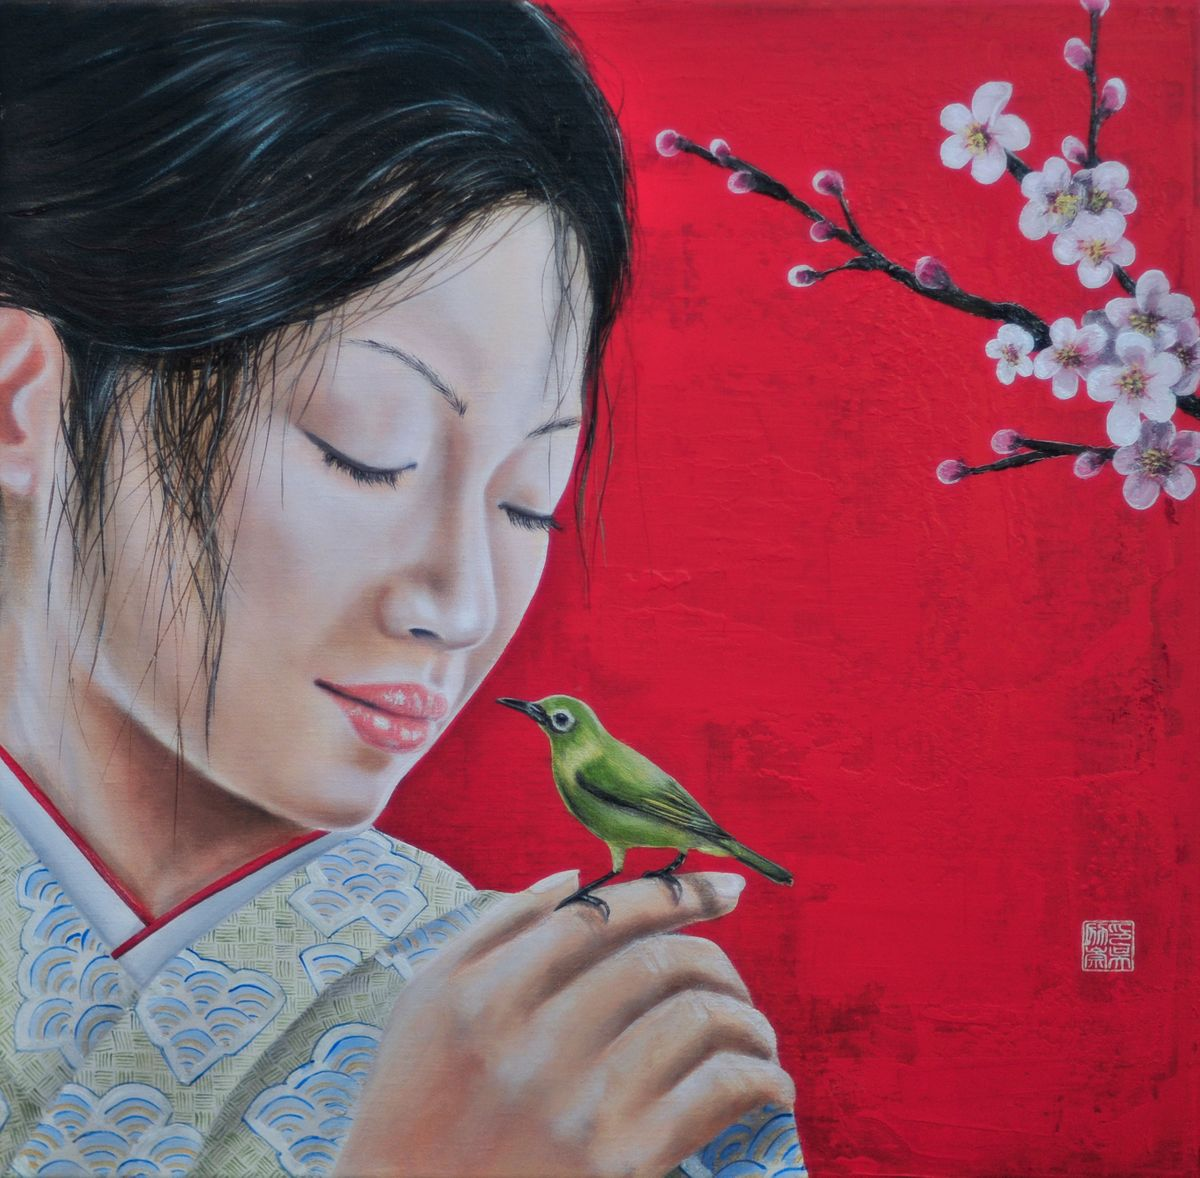 Sakura 2015 sound of the spring 50*50 cm